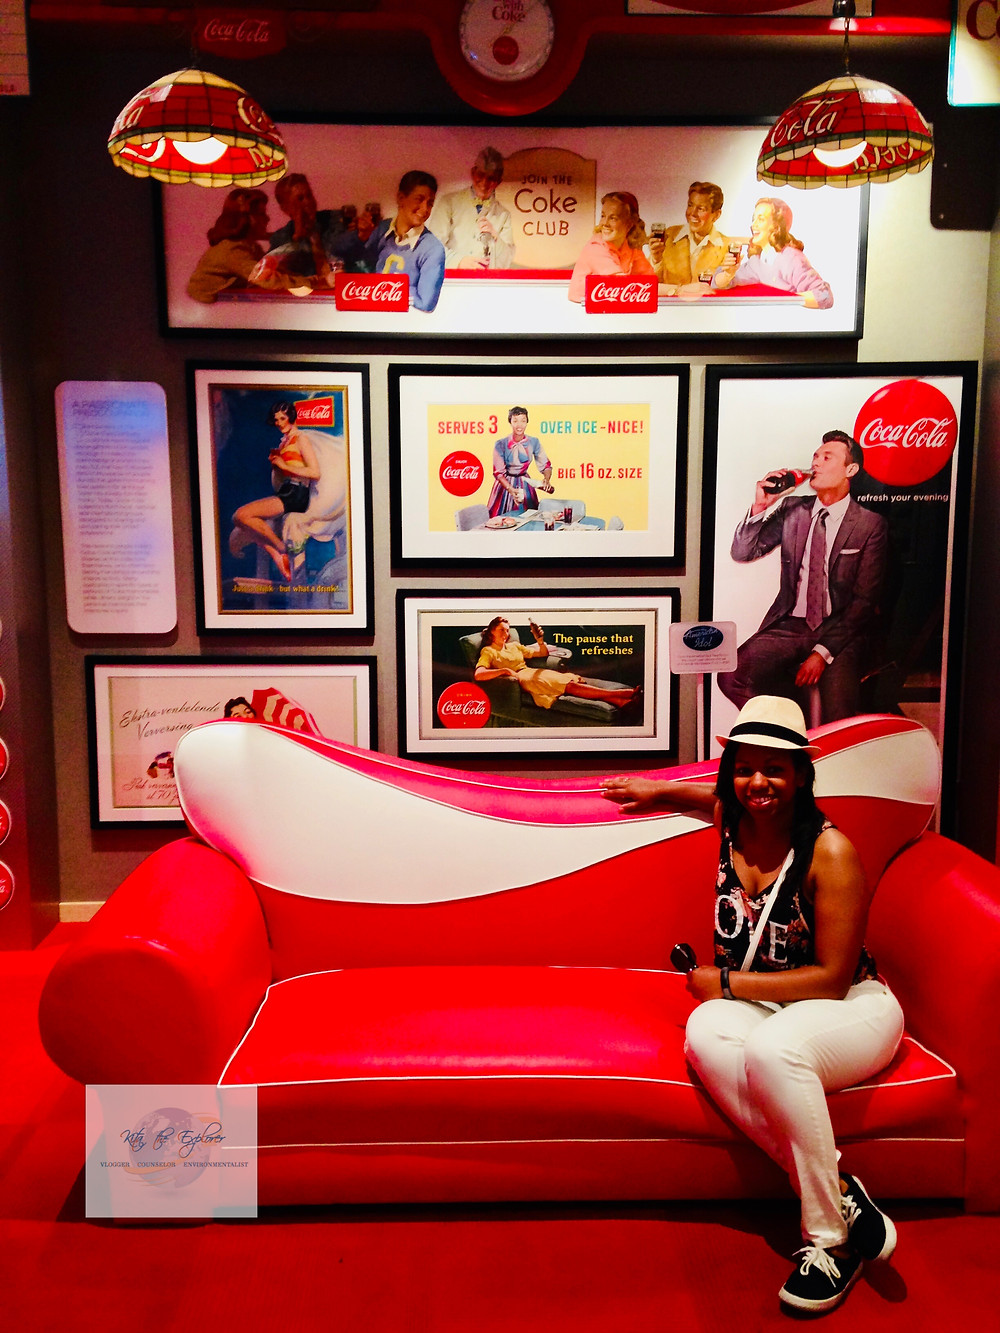 Me at the World of Coke